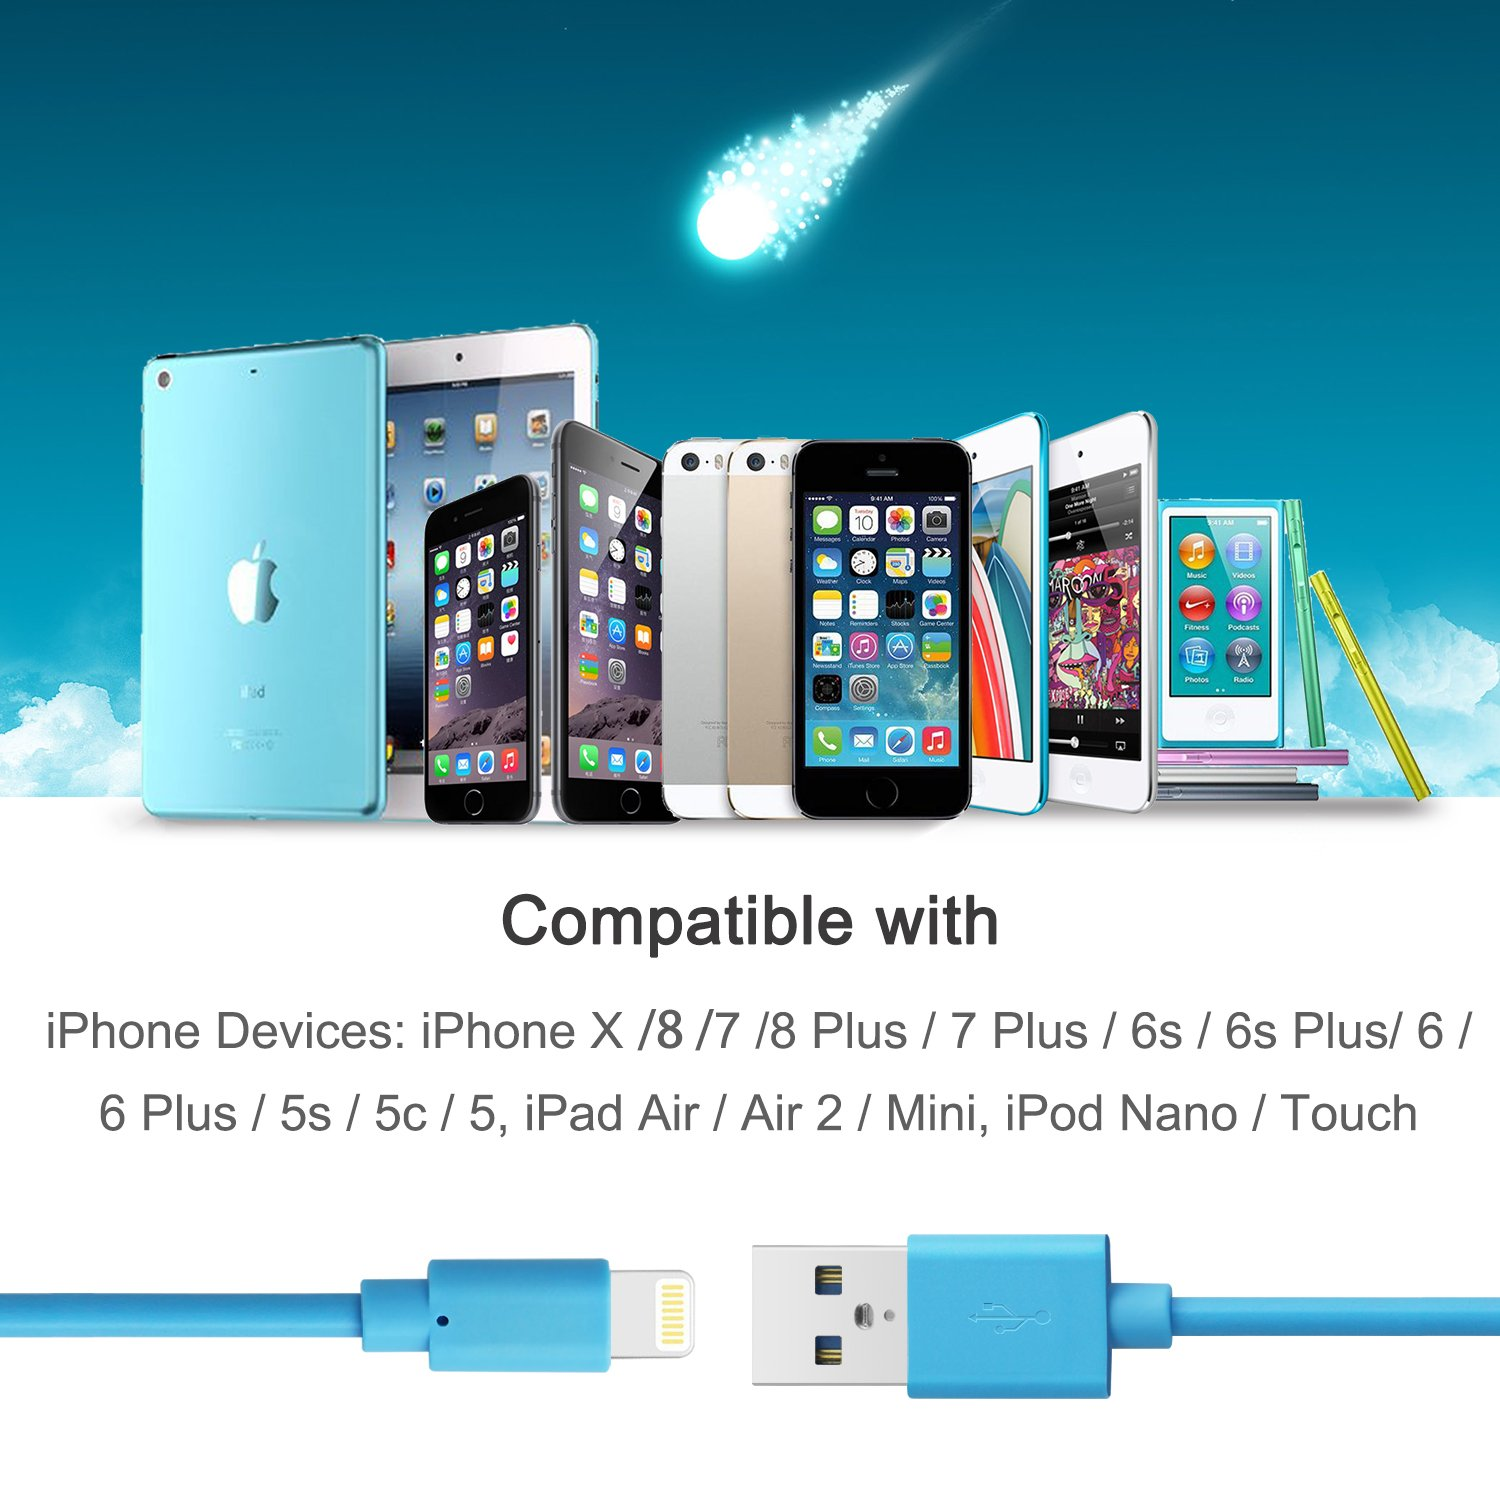 Quntis Lightning Cable Certificated 3 Pack 6ft iPhone Cord for iPhone X 8 8 Plus 7 7 Plus 6s 6s Plus